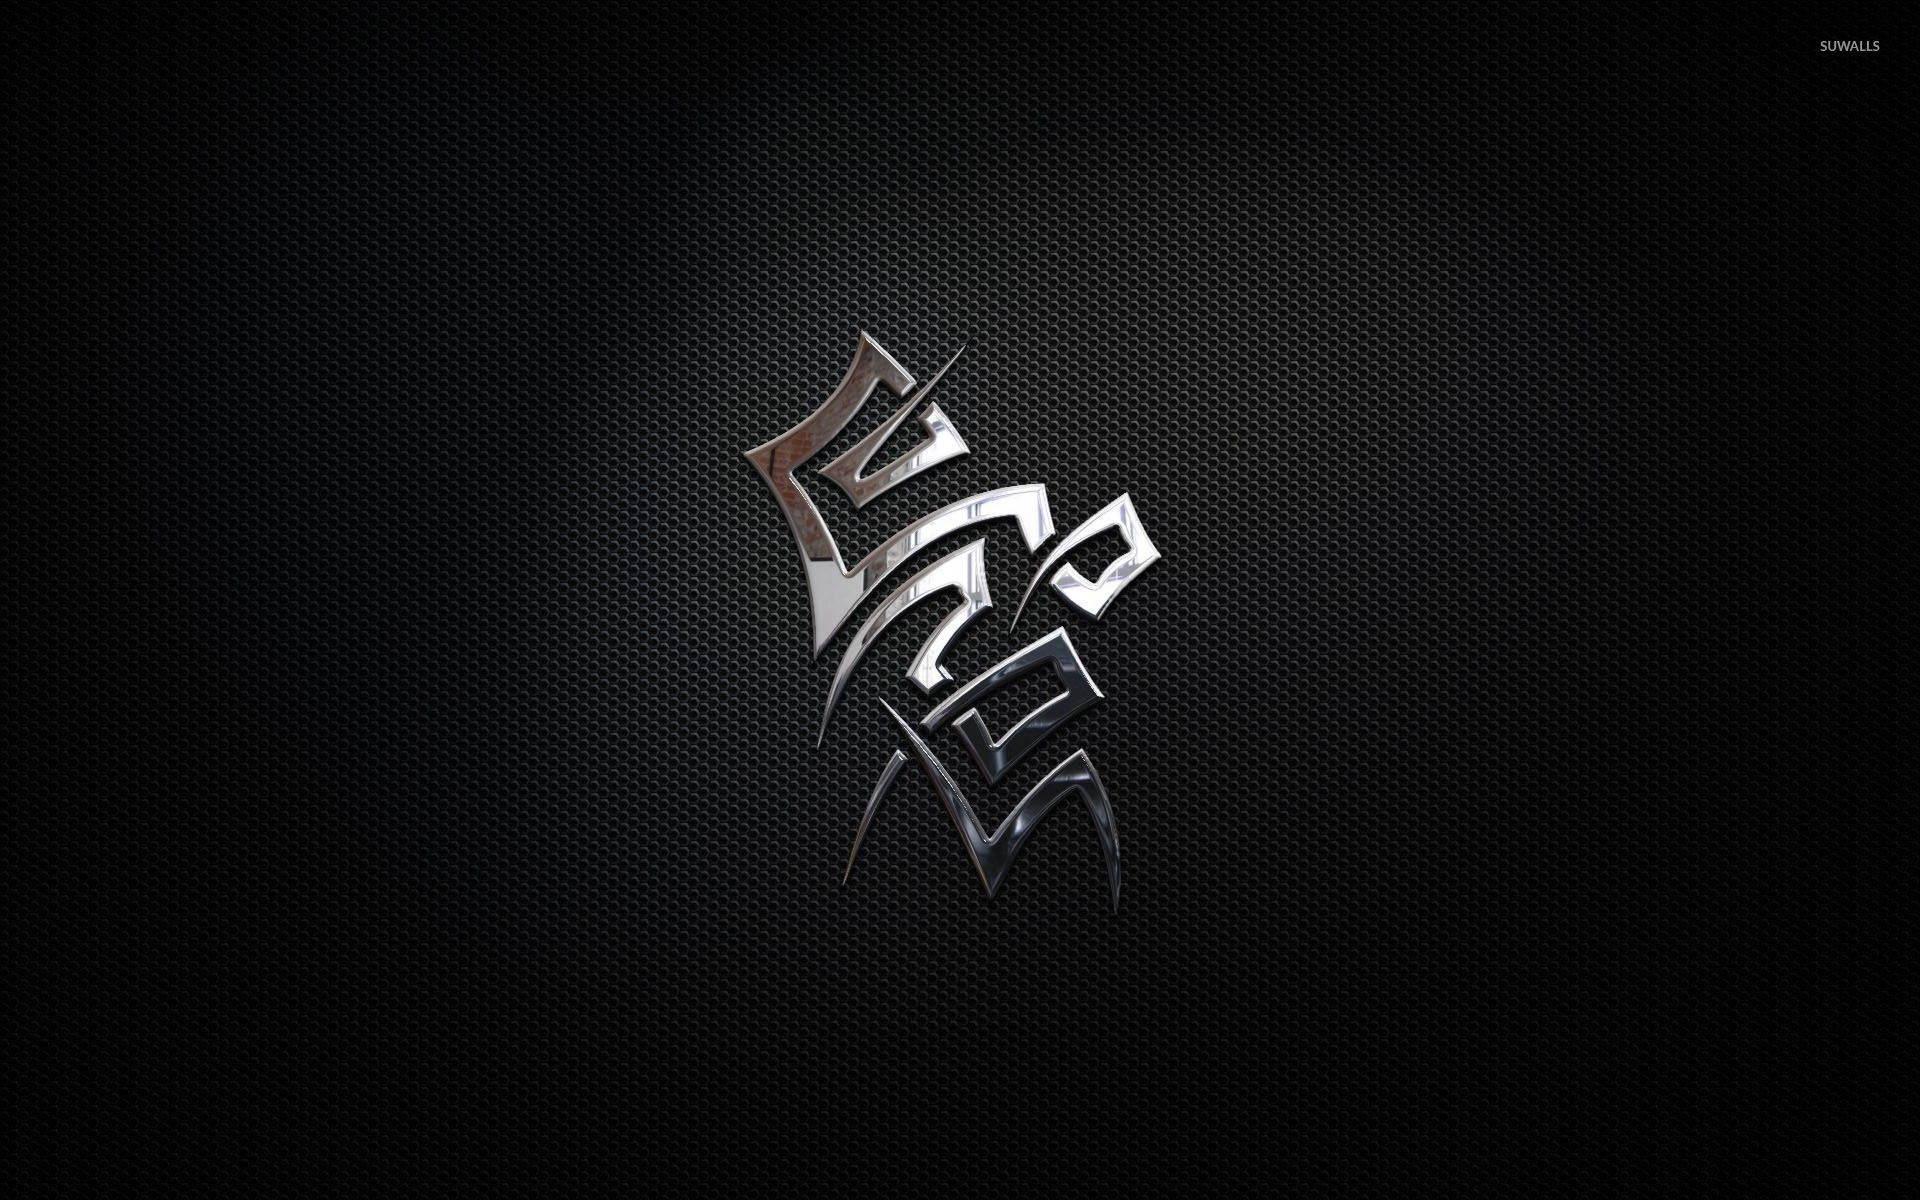 1920x1200 70+ Chinese Symbol Wallpapers on WallpaperPlay